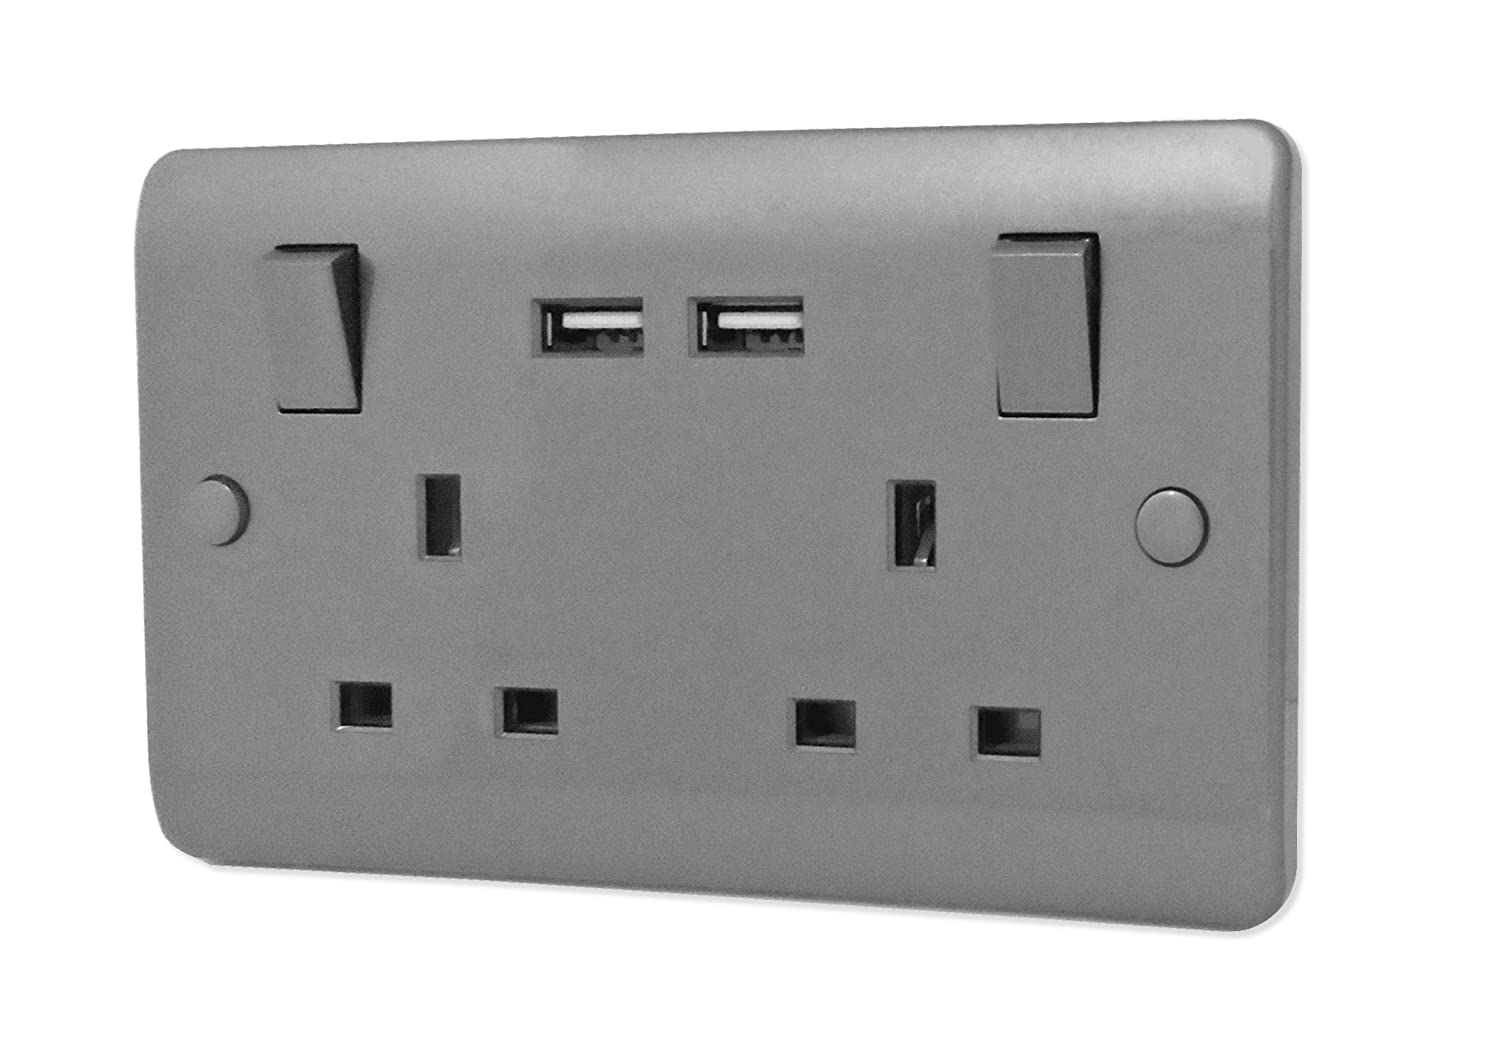 iSocket USB Wall Socket Gun Metal Grey 2 Gang 13A: Amazon.co.uk ...